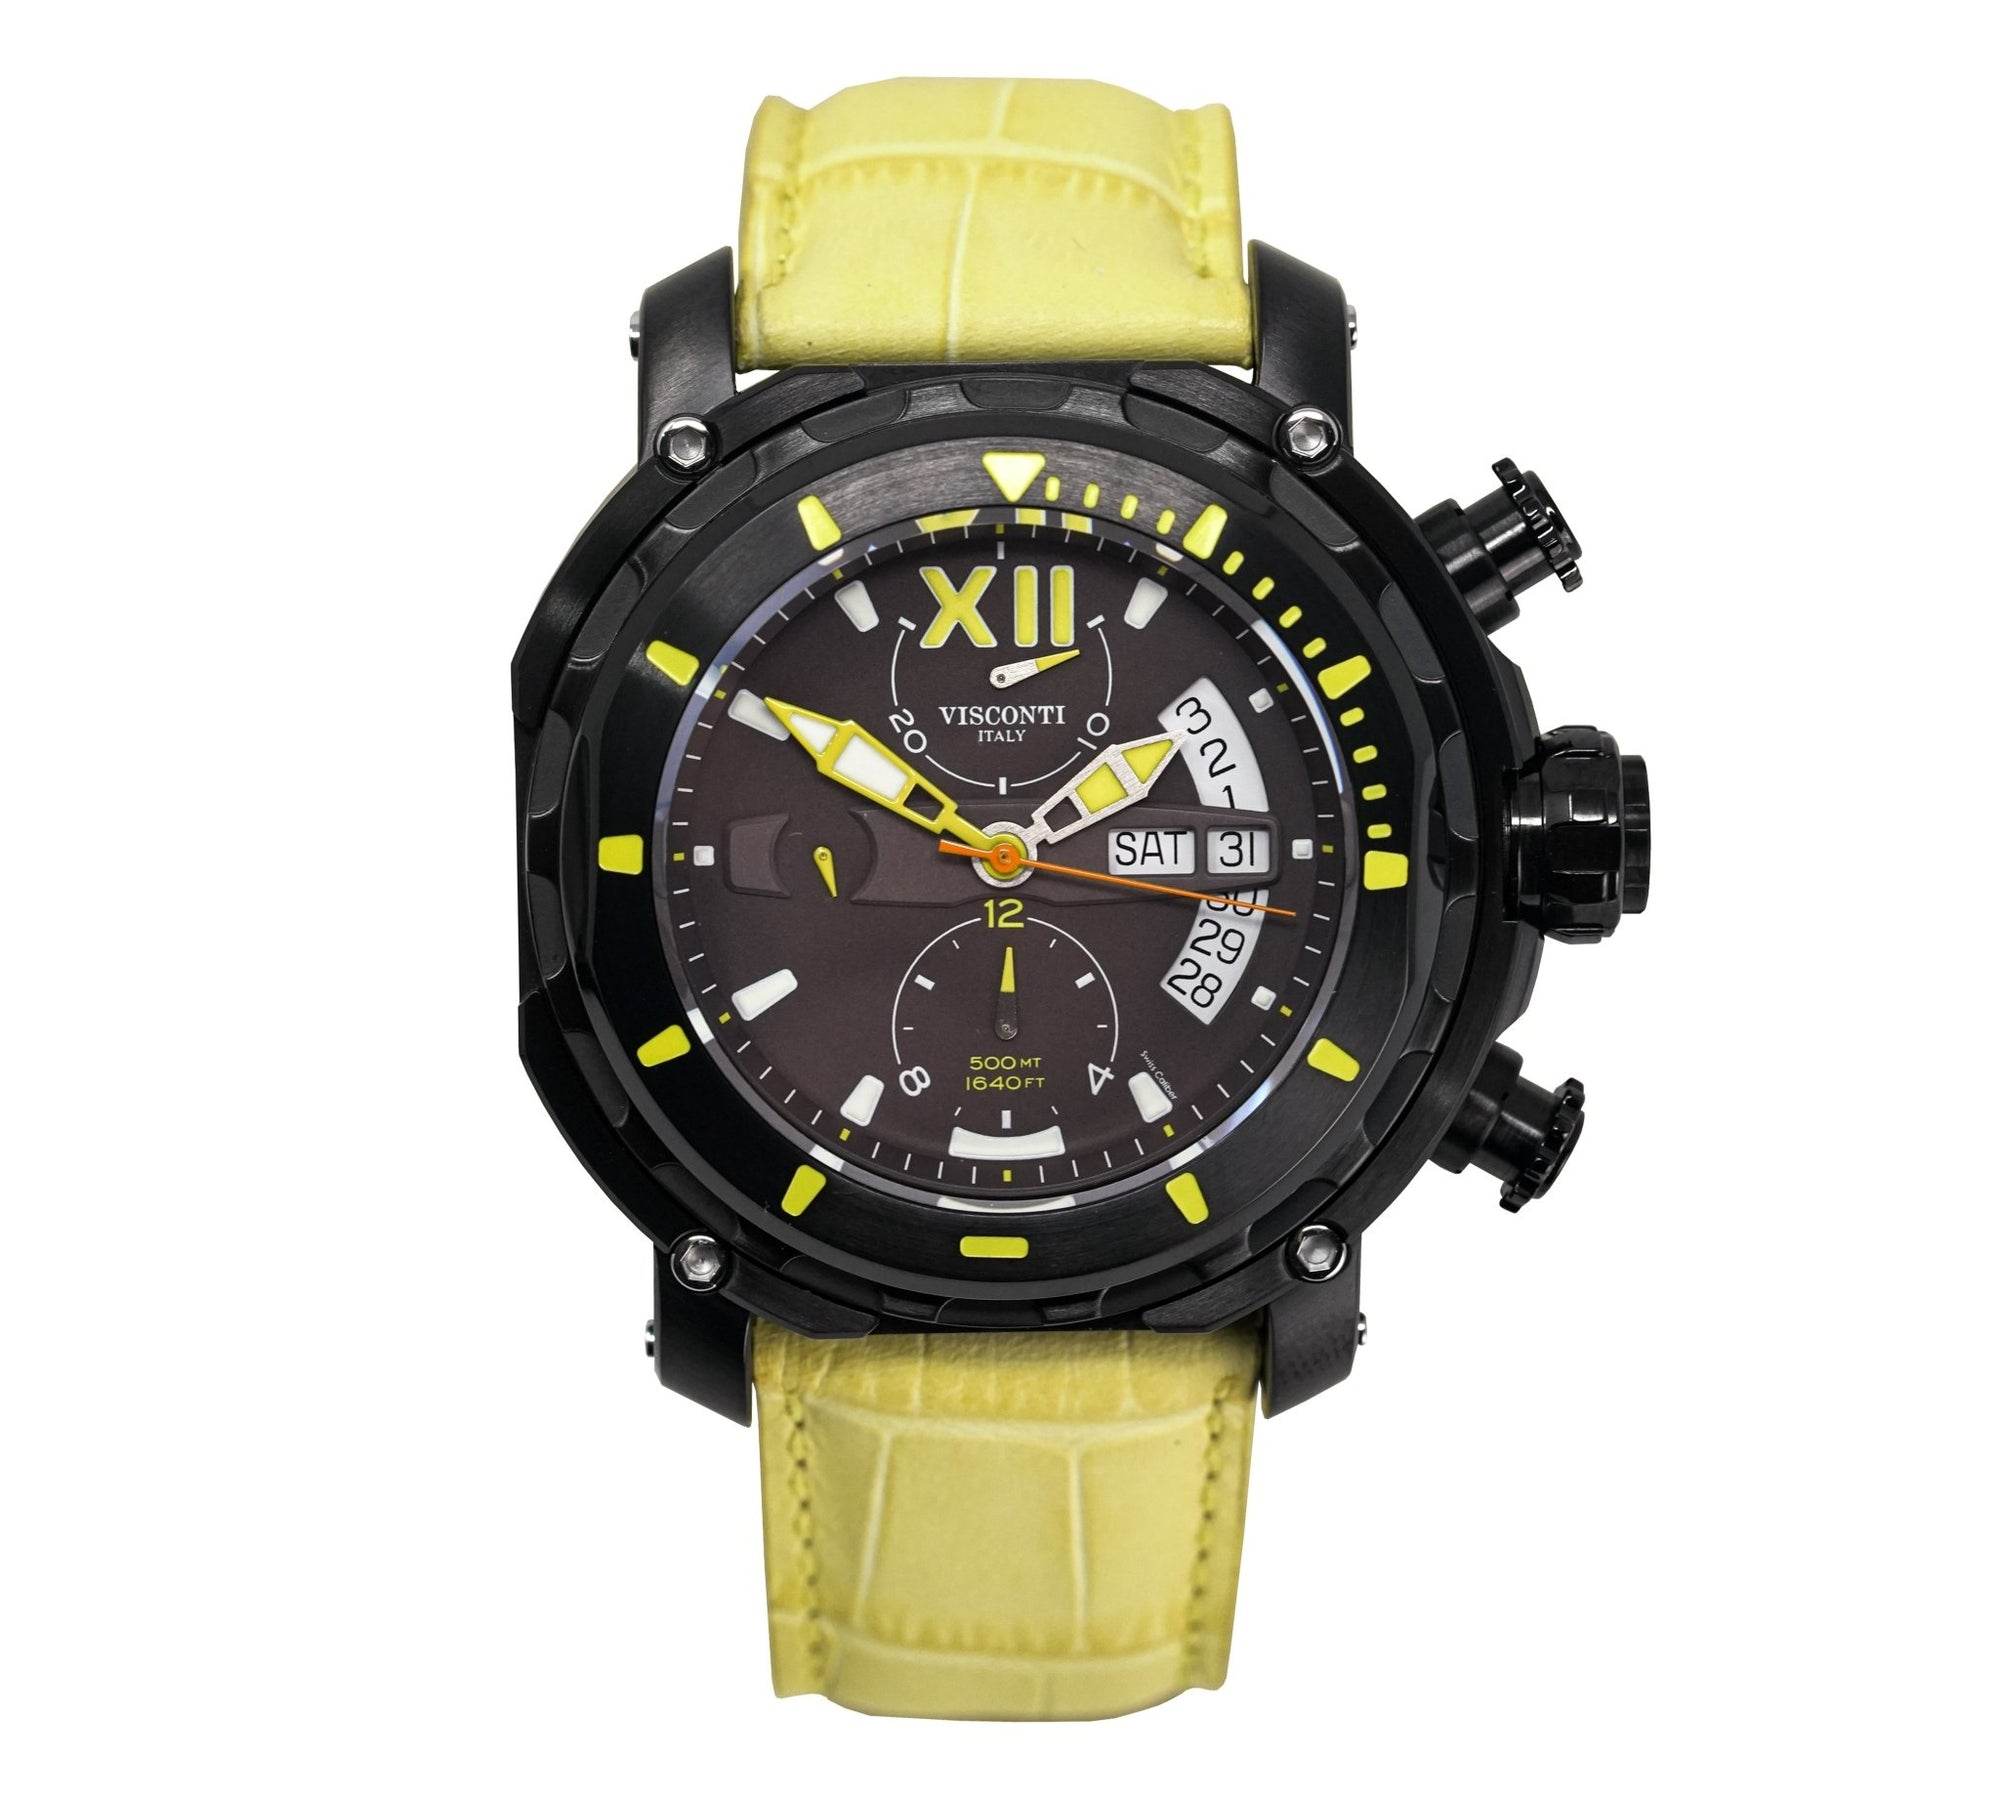 Visconti Full Dive 500M Chronograph Pale Yellow - Watches & Crystals